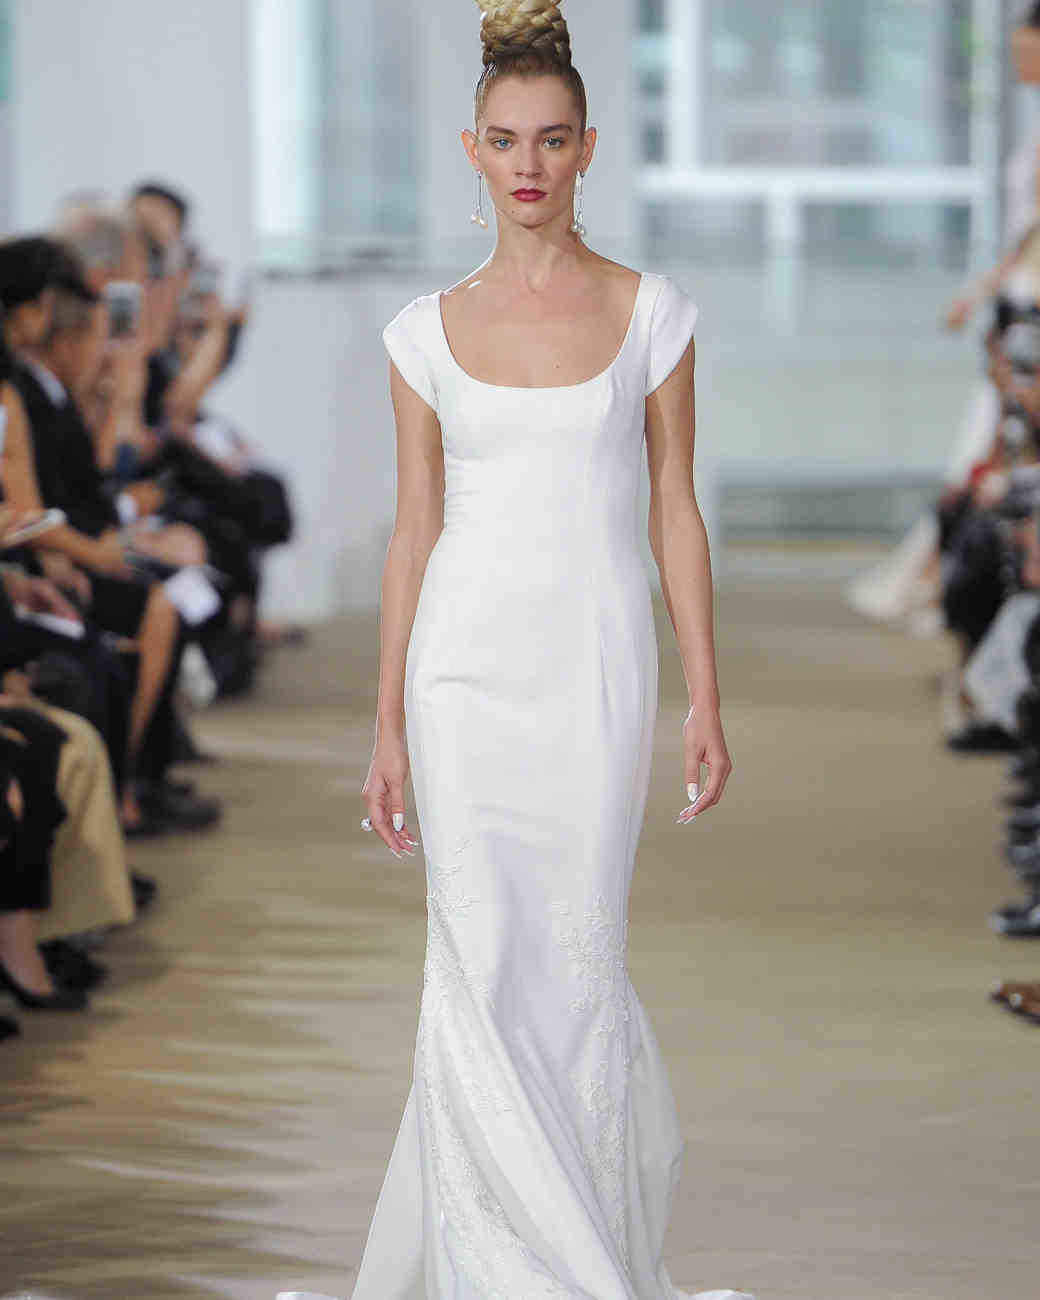 Di Santo Wedding Gowns: Simple Wedding Dresses That Are Just Plain Chic